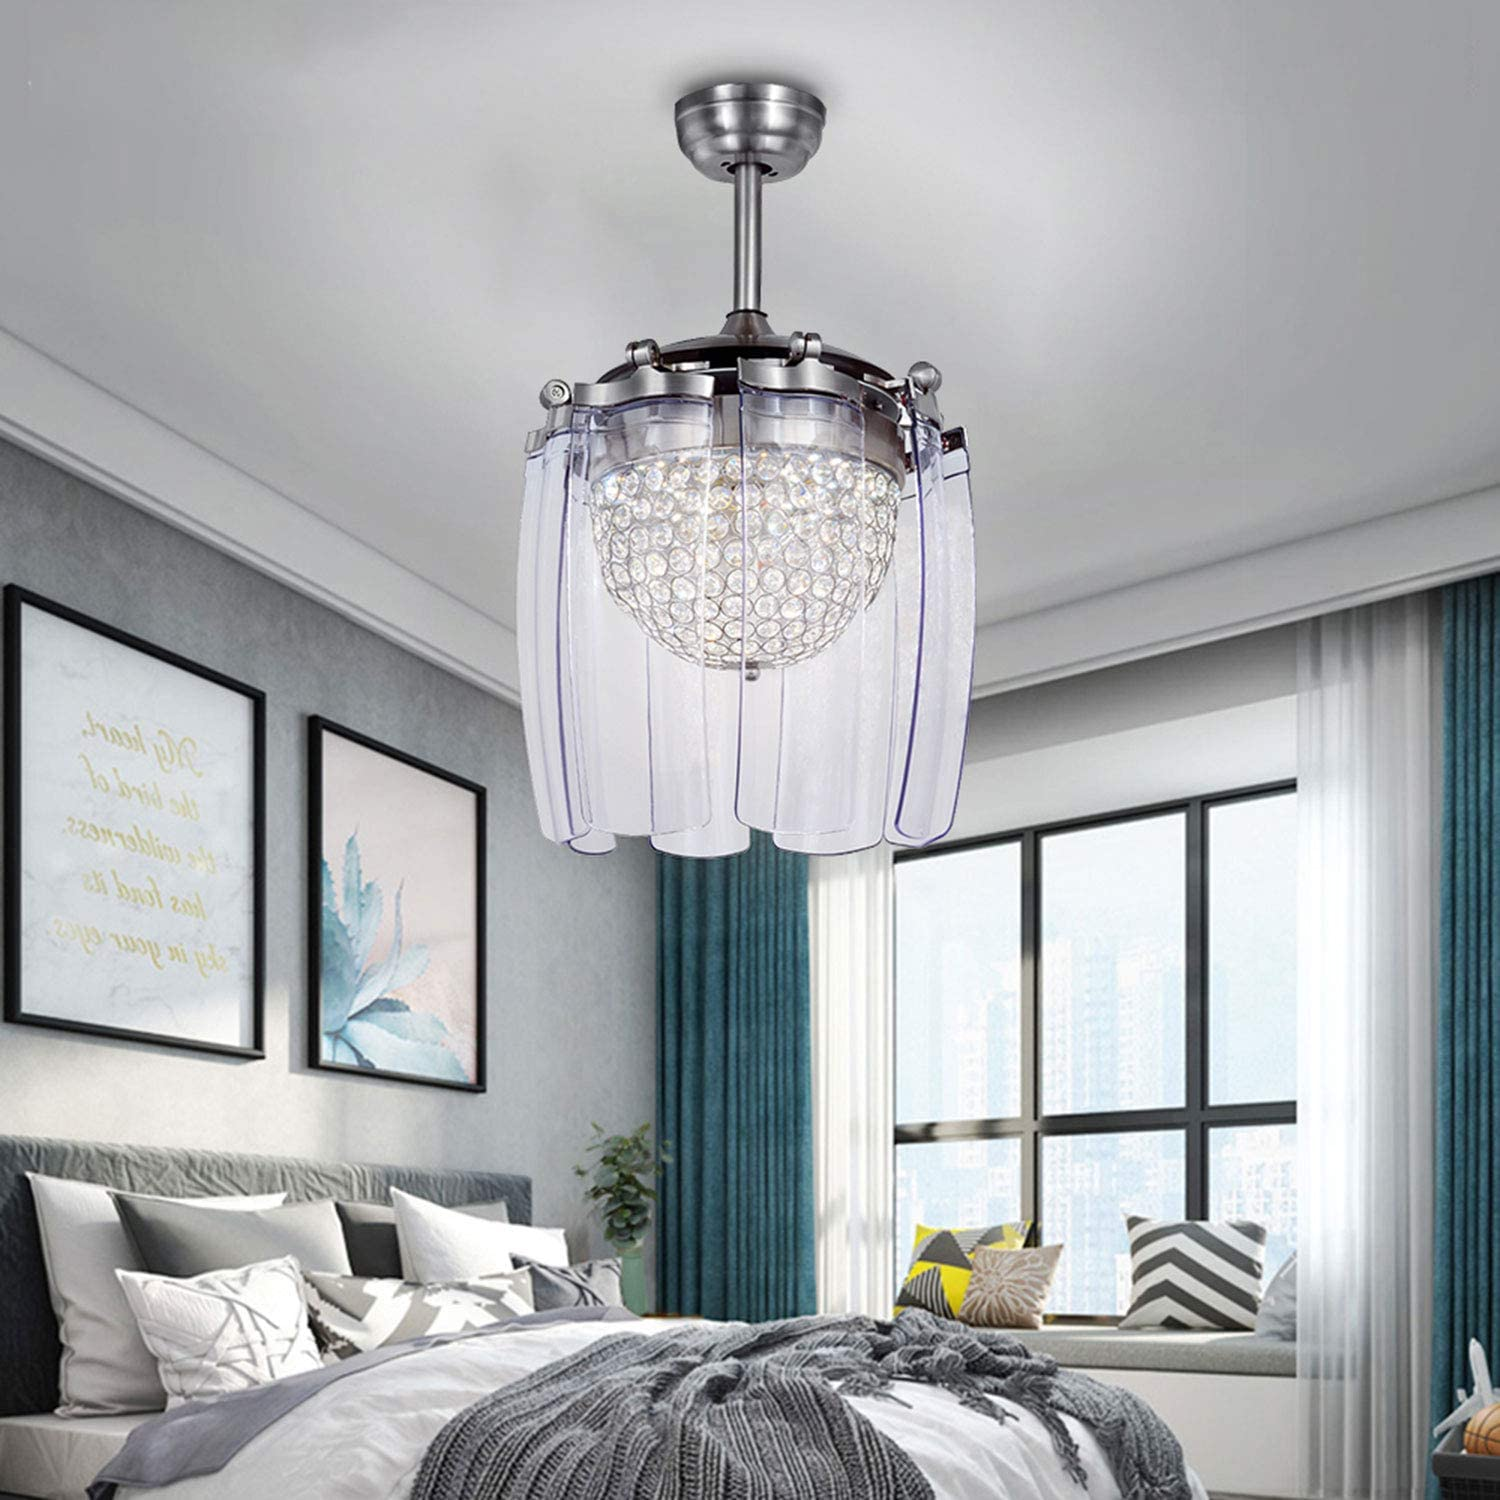 Tropicalfan Crystal Retractable Ceiling Fan With Remote Control LED Home Decoration Dinner Room Bedroom Silent Modern Fans Chandelier 8 Acrylic Invisible Blades 42 Inch